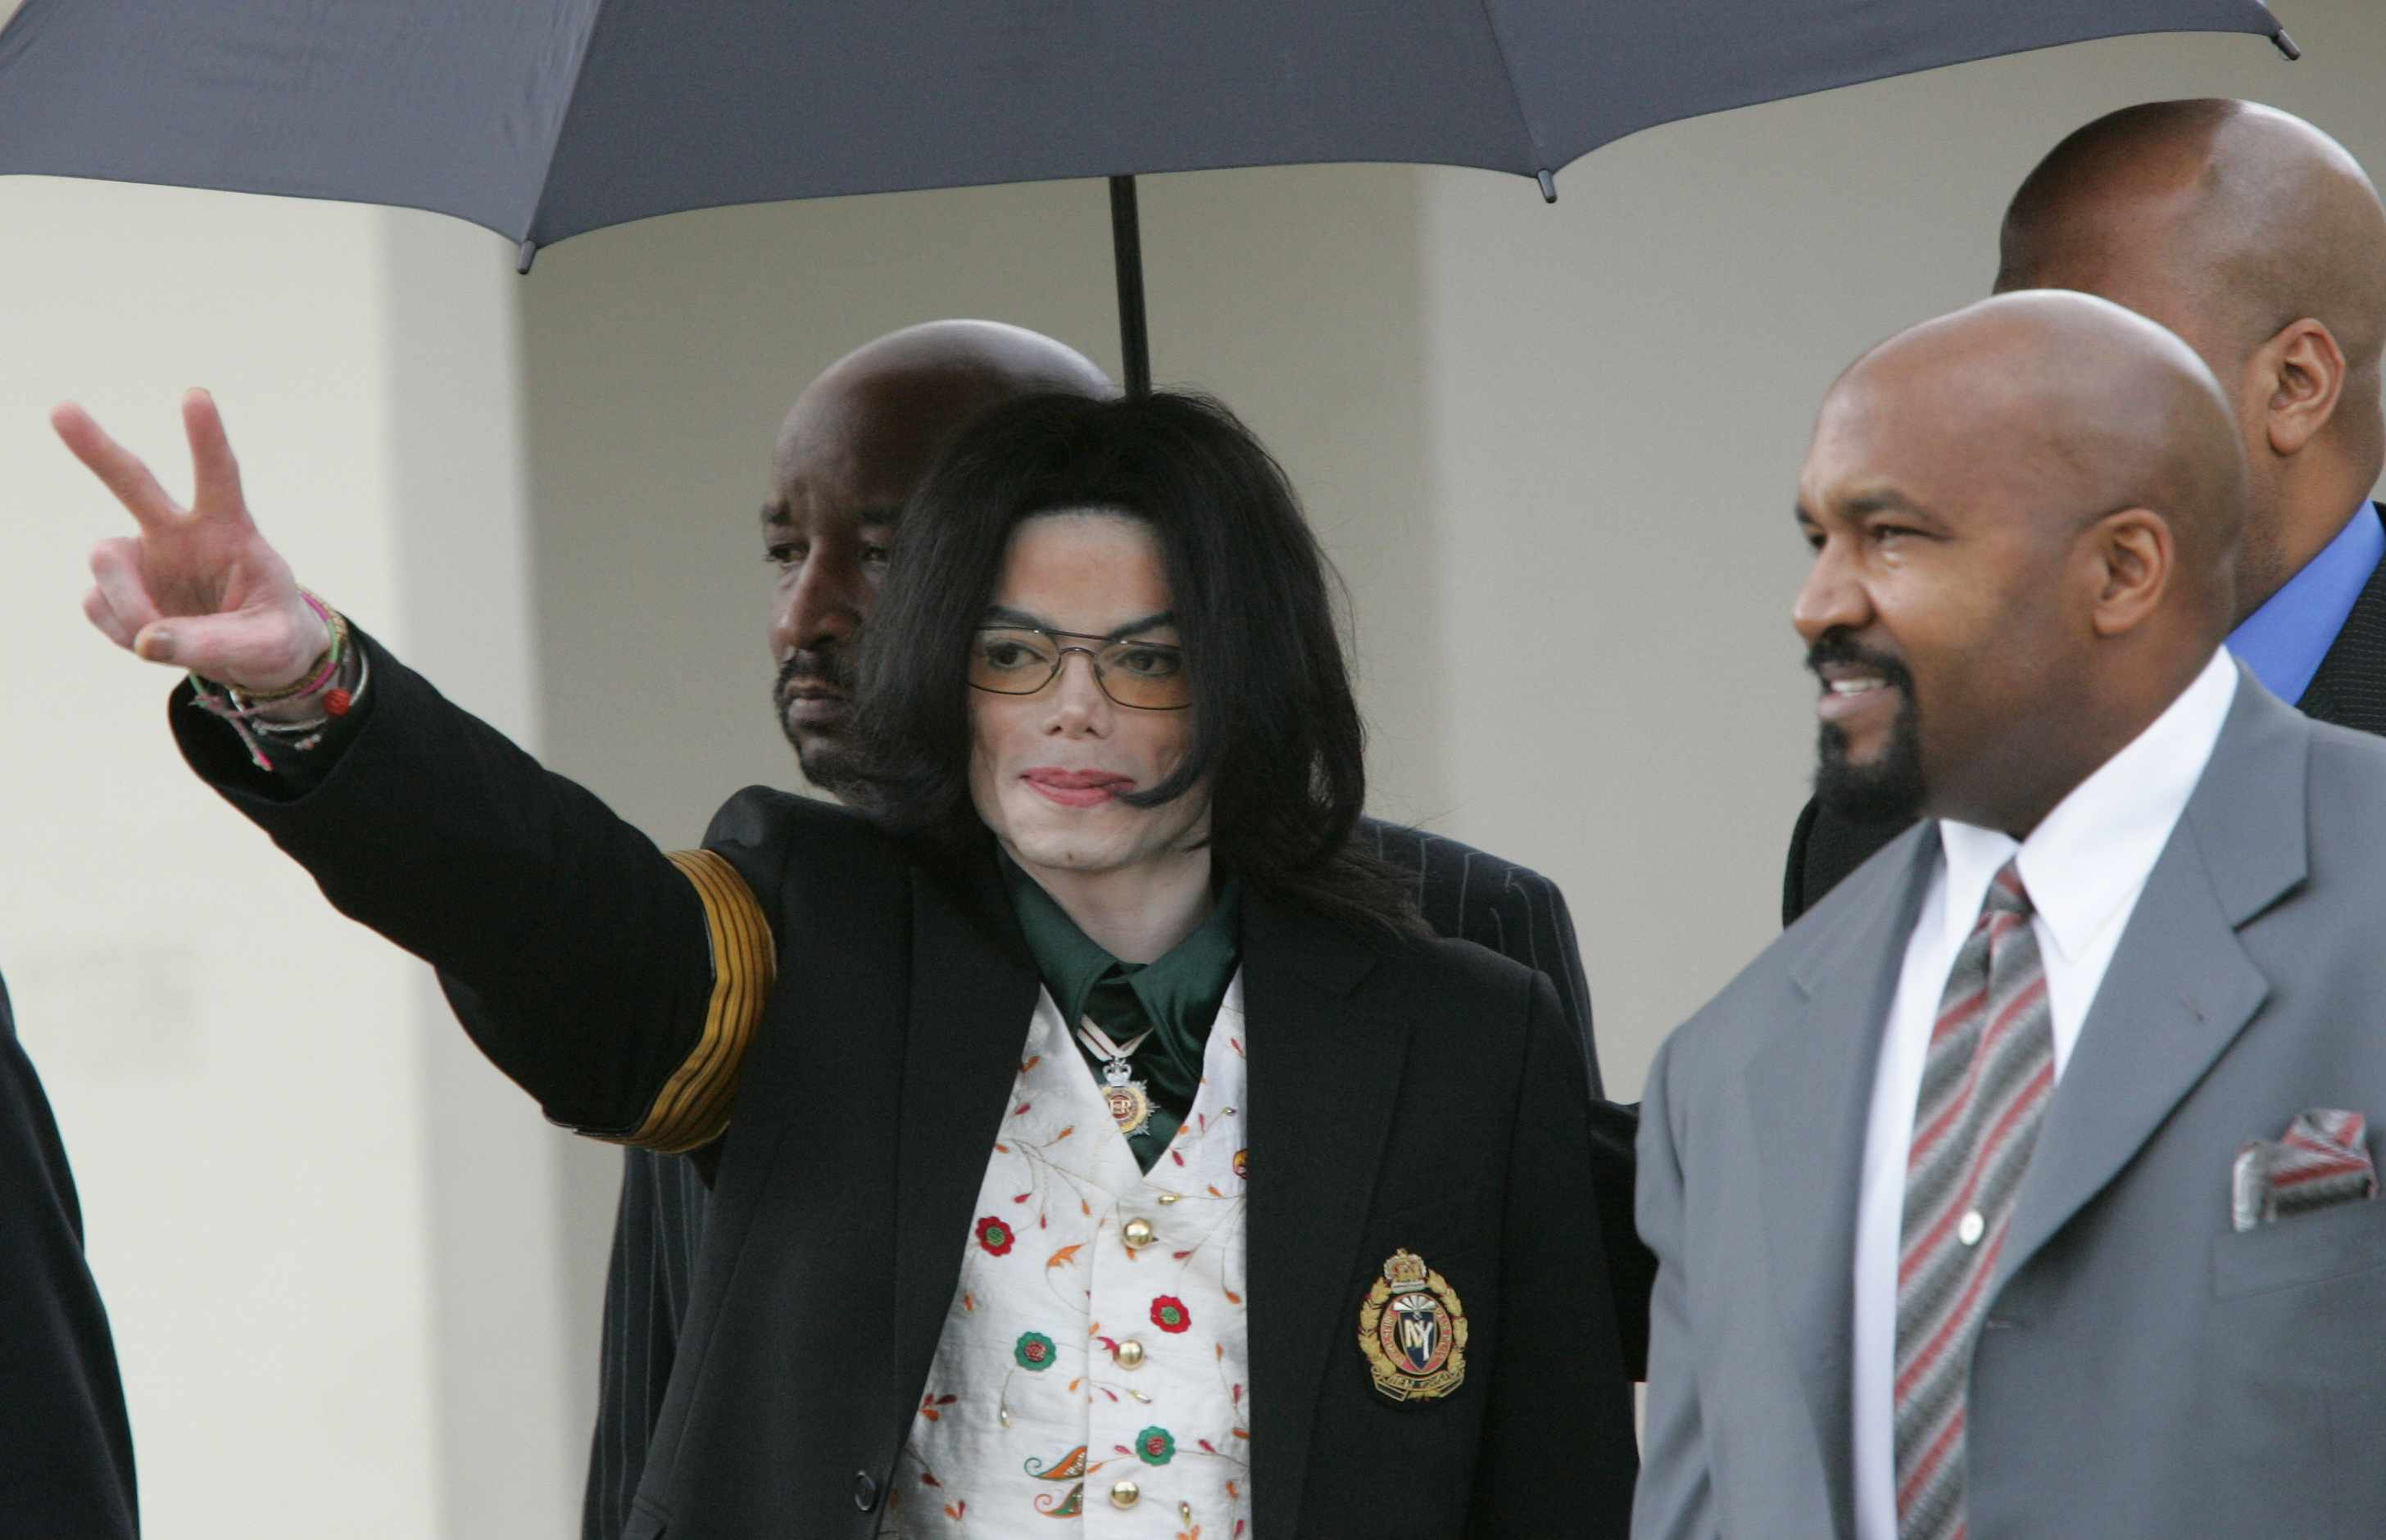 Pop singer Michael Jackson gestures as he leaves the Santa Barbara County Courts with his bodyguards for the third day of his child molestation trial. The entertainer faces ten counts of felony molestation of a male minor at his Neverland Ranch. (Photo by Kimberly White/Corbis via Getty Images)